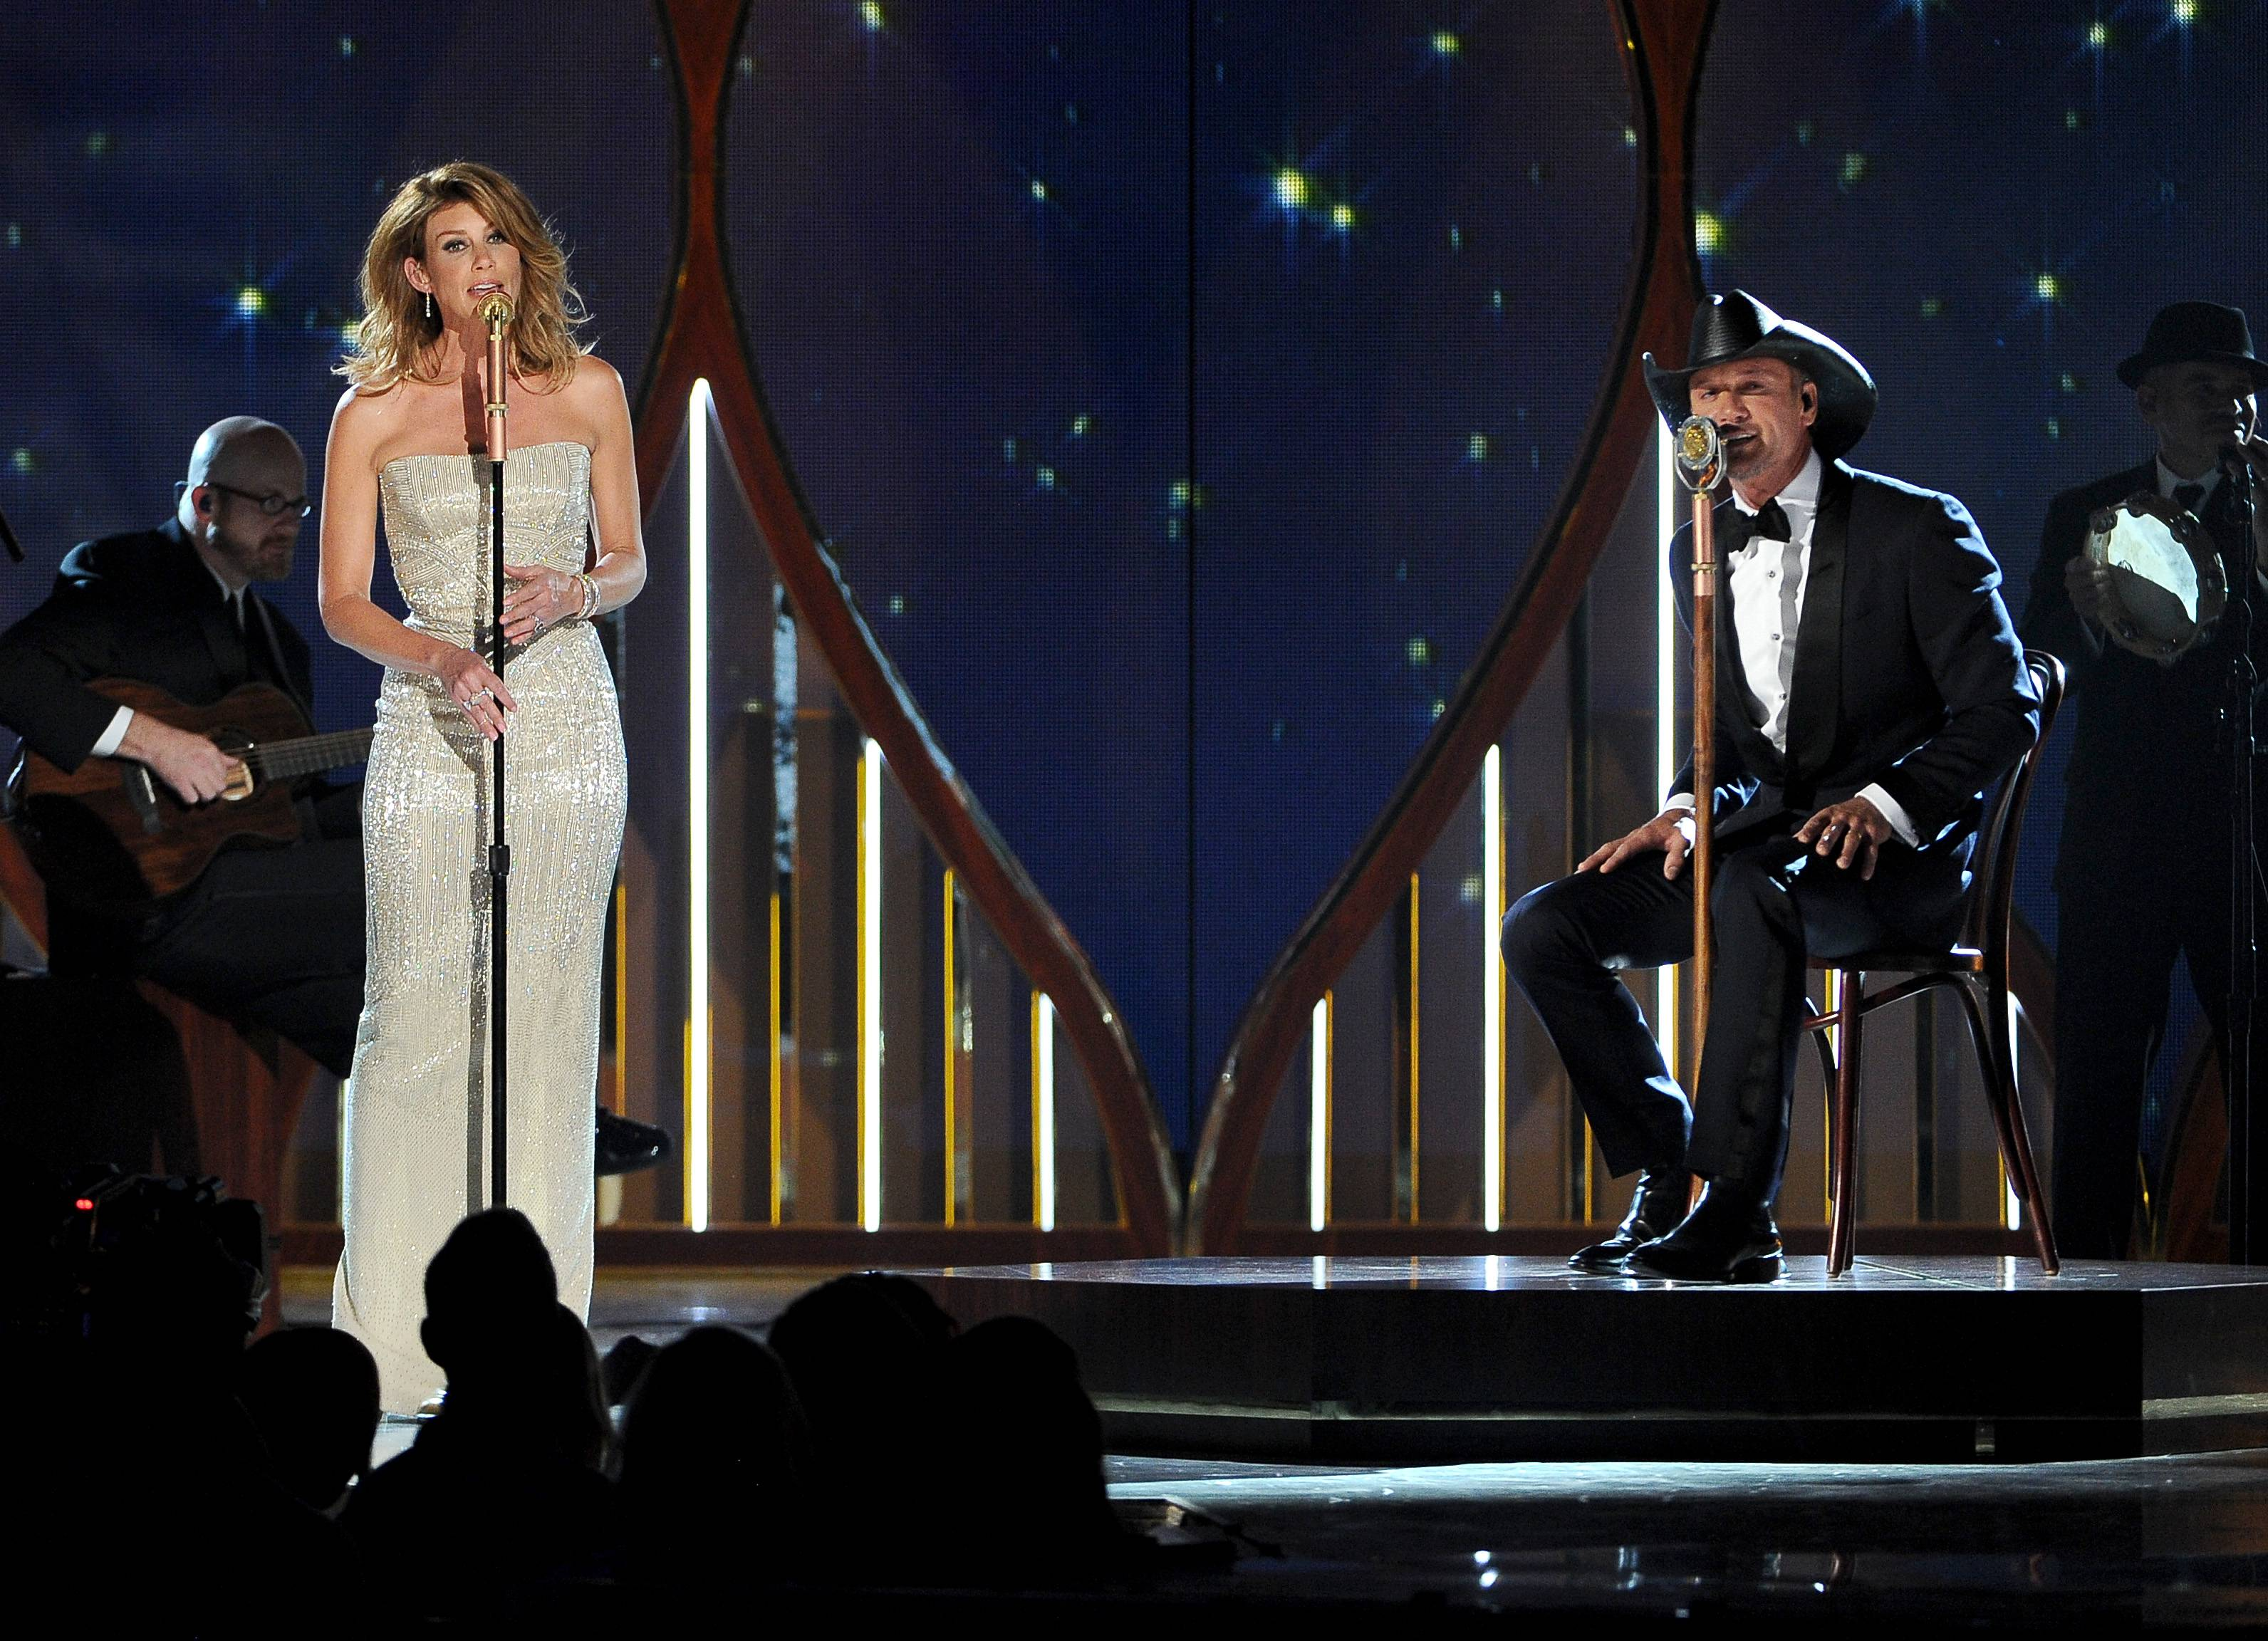 Faith Hill, left, and Tim McGraw perform on stage at the 49th annual Academy of Country Music Awards.